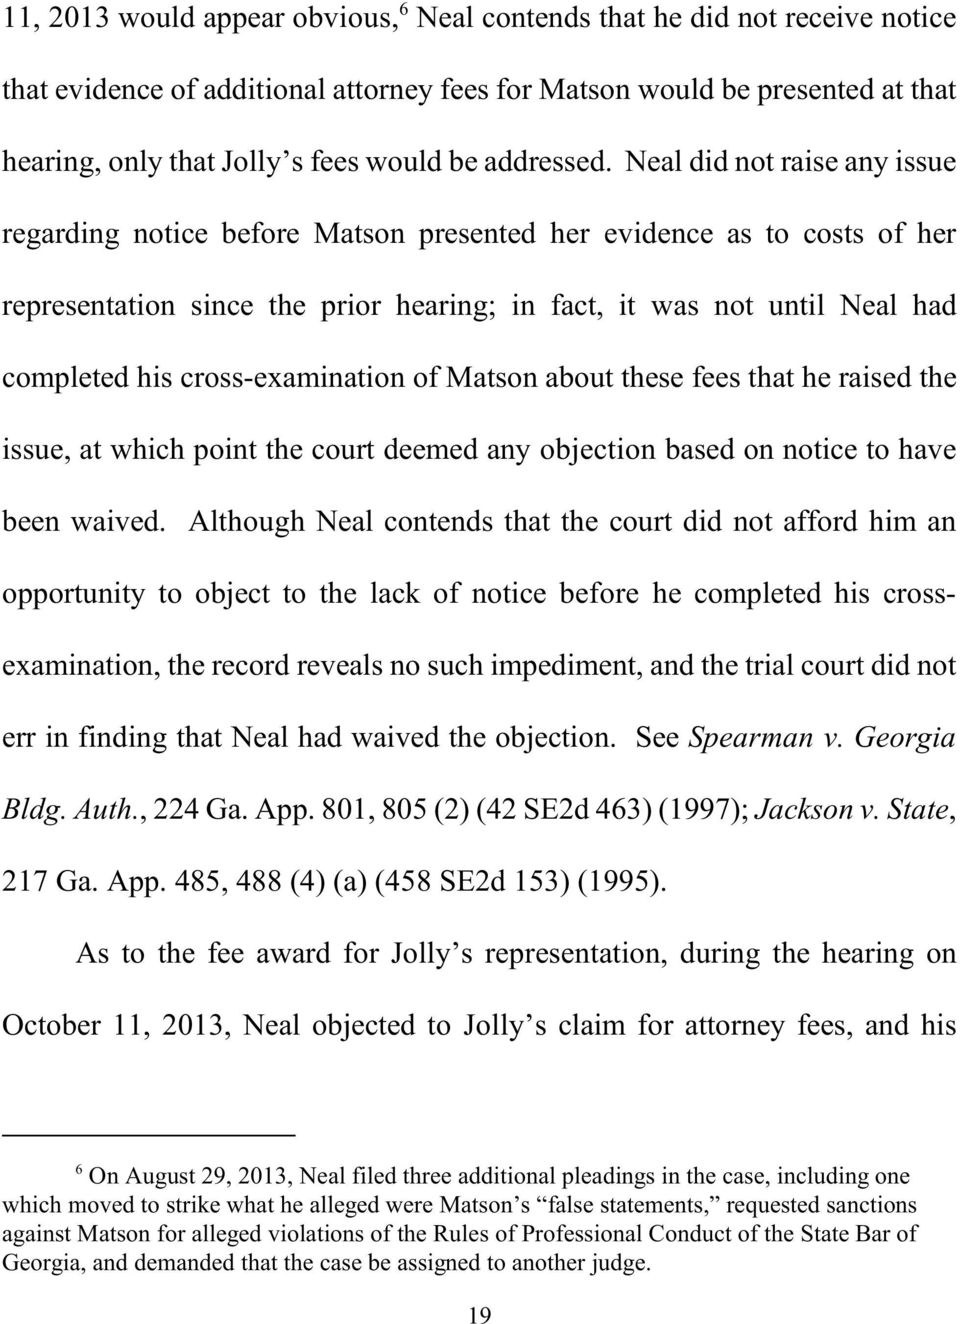 Neal did not raise any issue regarding notice before Matson presented her evidence as to costs of her representation since the prior hearing; in fact, it was not until Neal had completed his